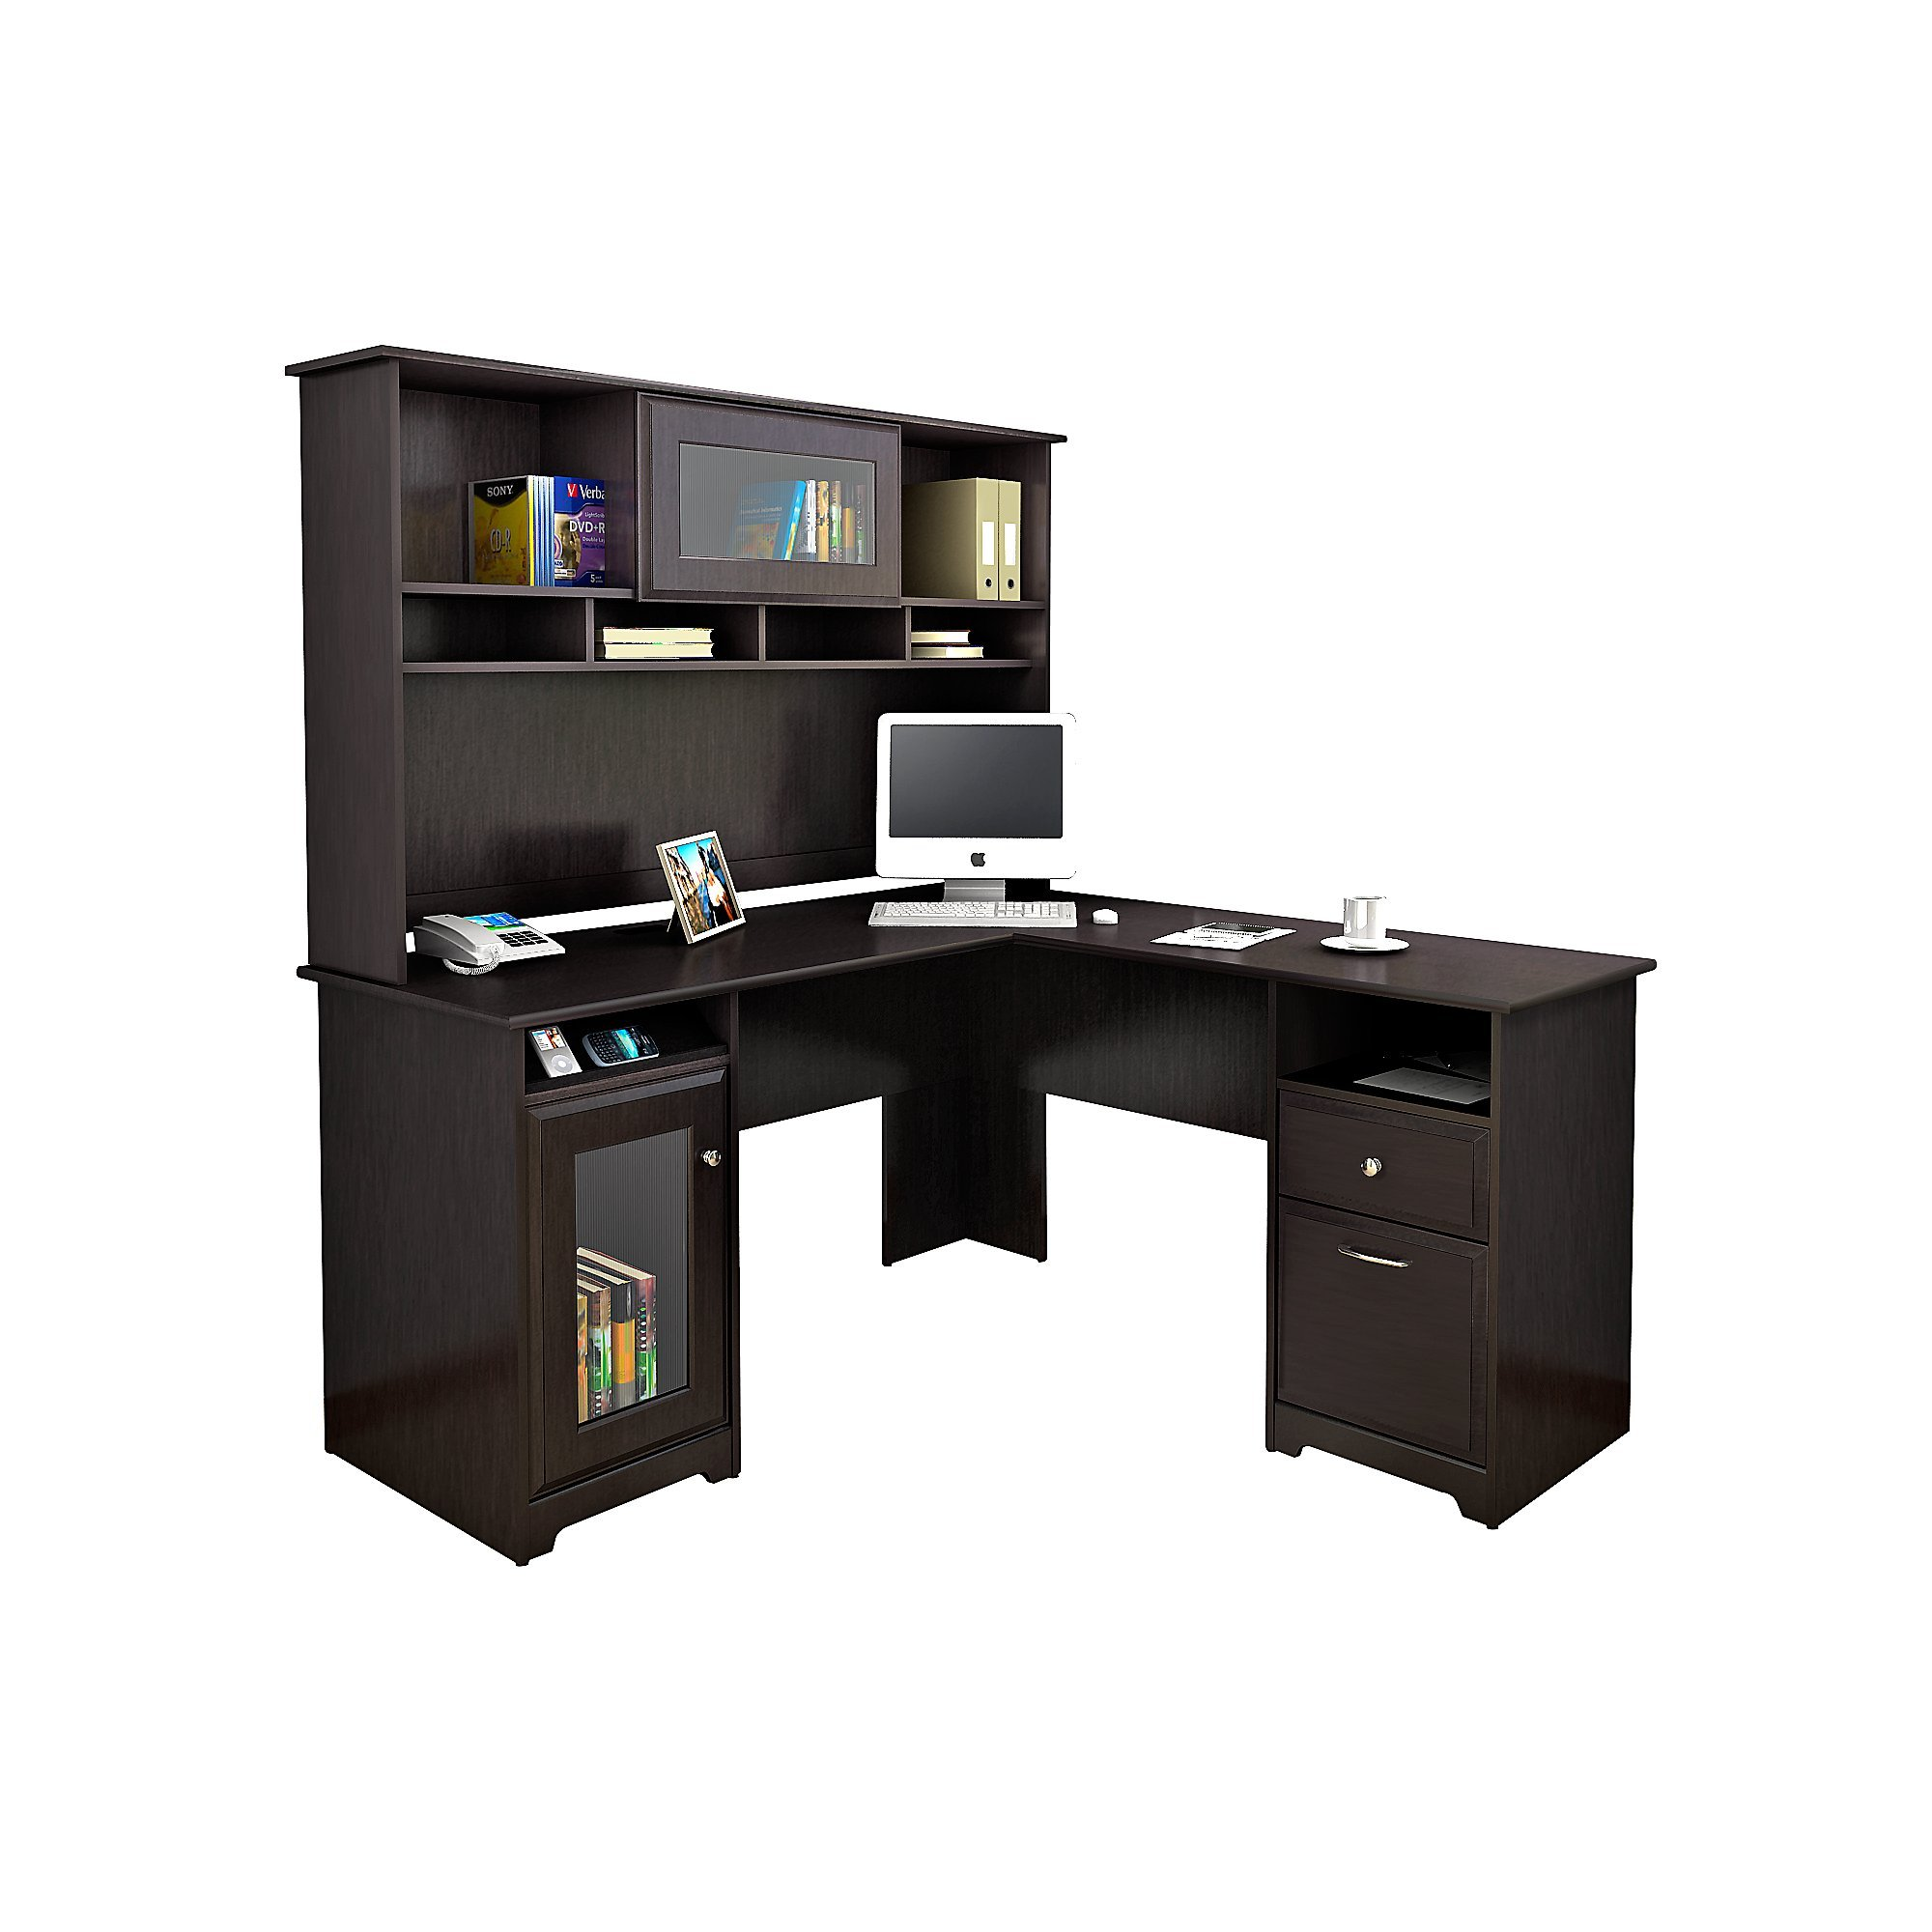 Bush Furniture Cabot L Shaped Desk with Hutch in Espresso Oak by Bush Furniture